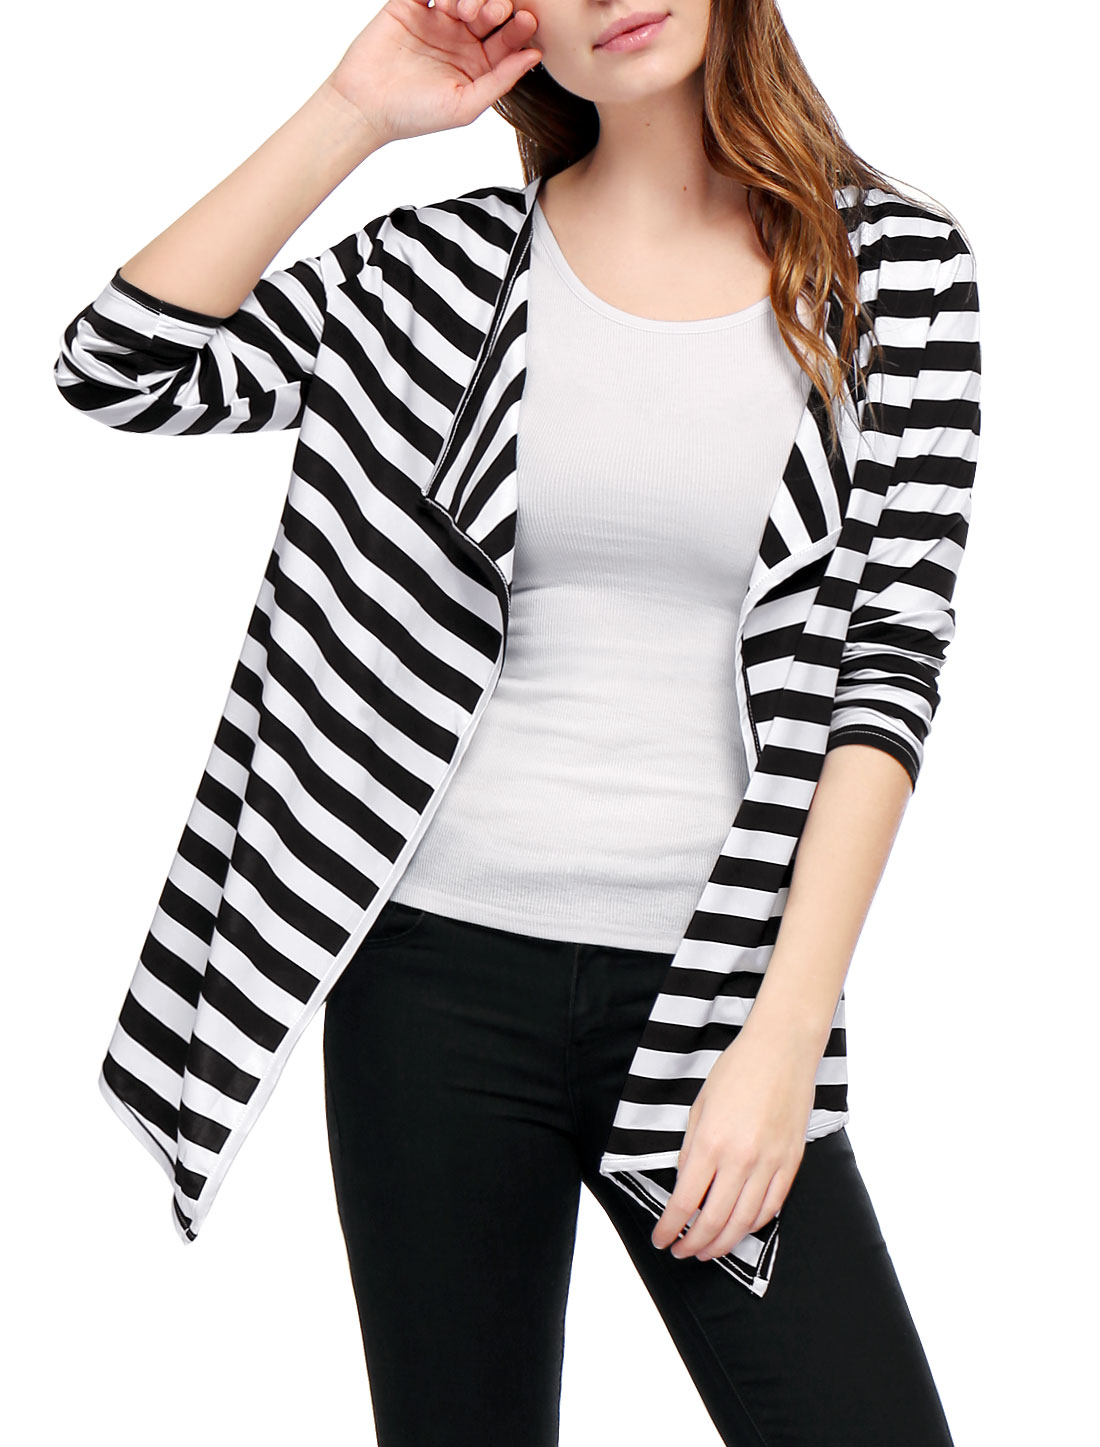 Open Front Design Ruched Draped Black White Outwear Cardigan for Lady L